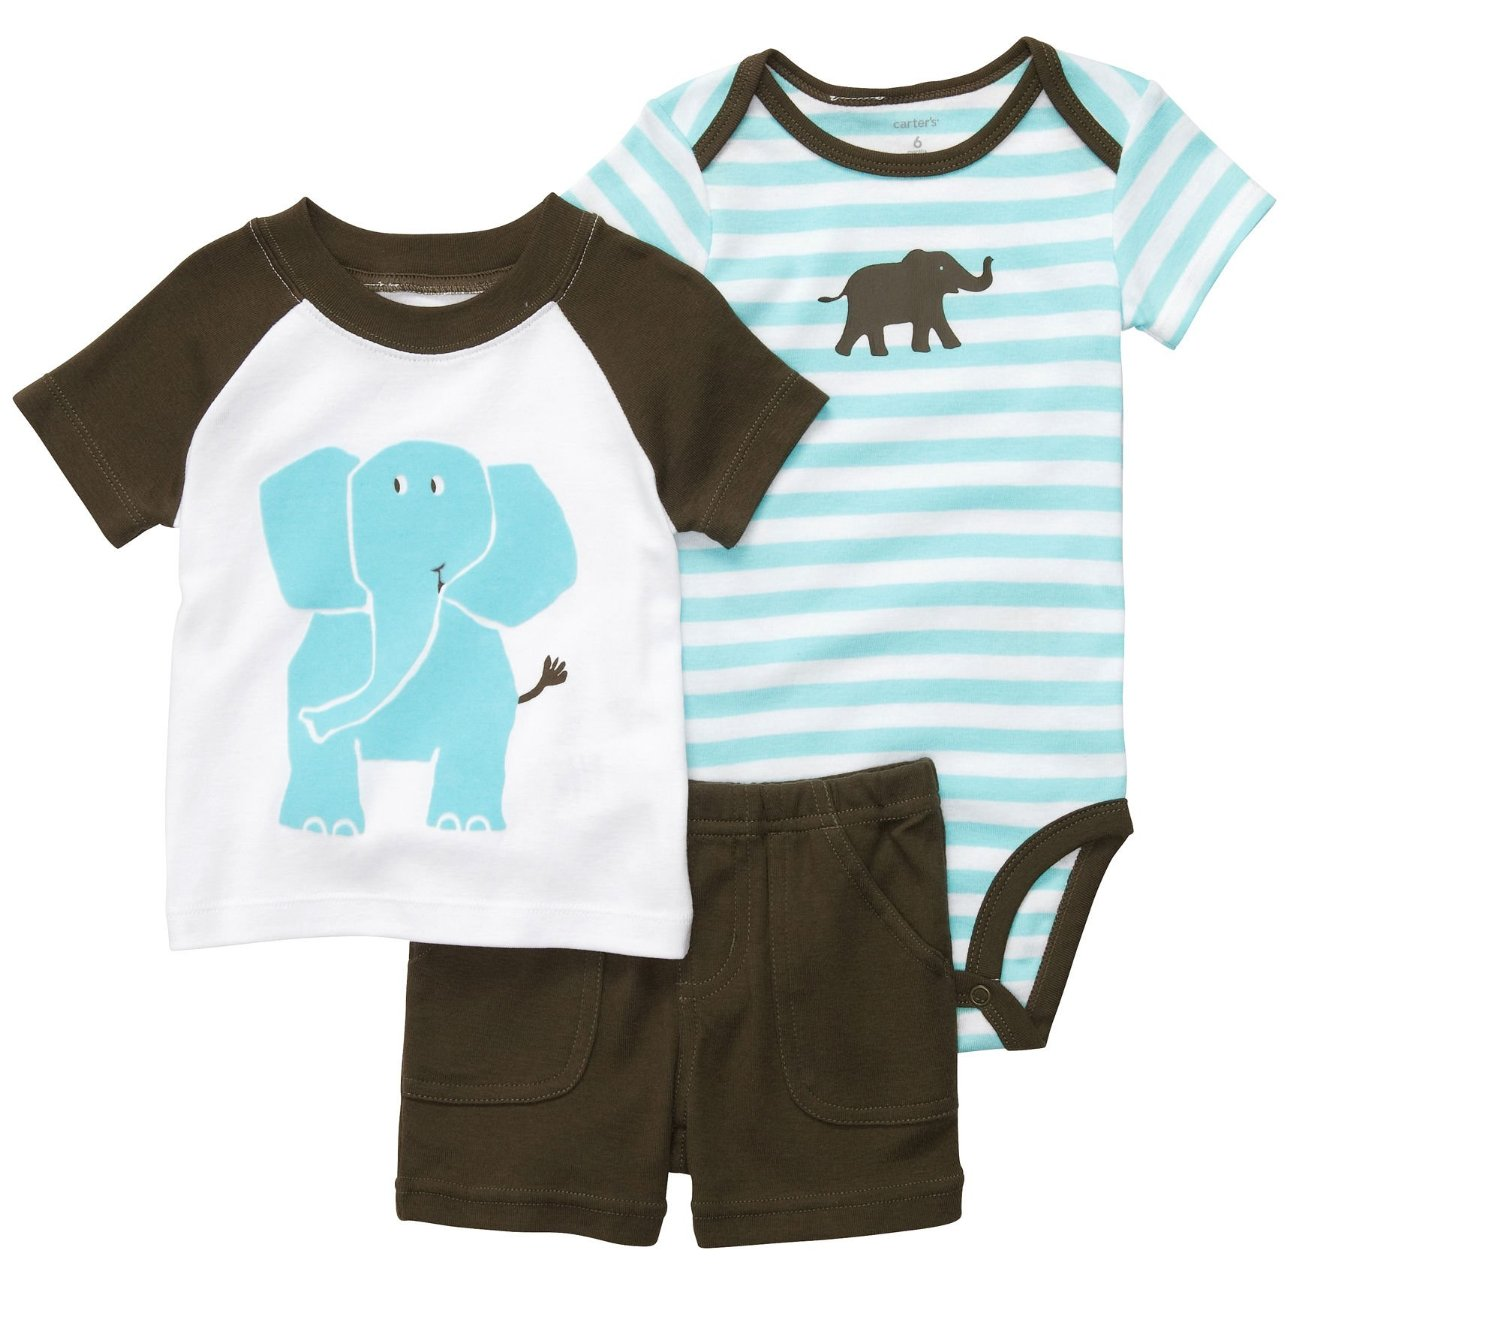 Amazon.com Bargain: 50% Off Carters Baby Clothes & Accessories